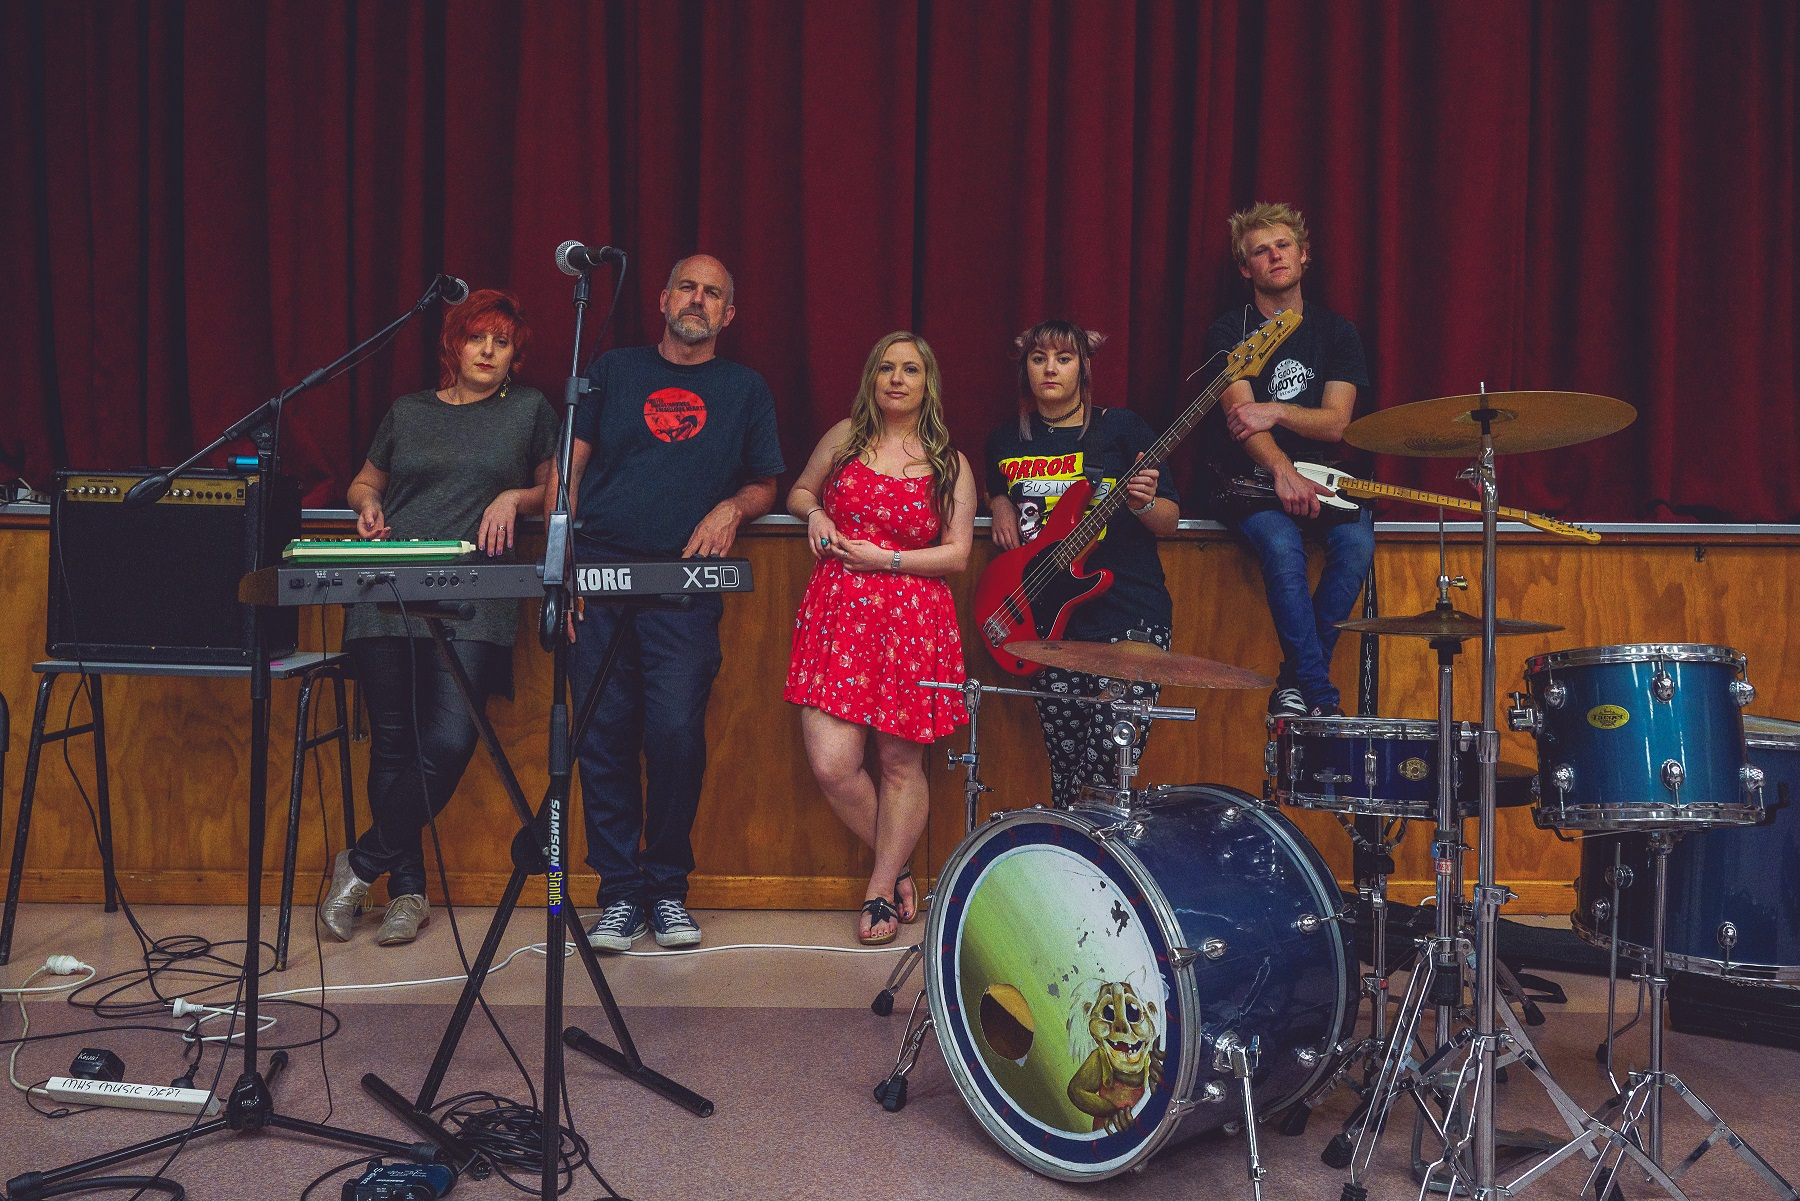 DateMonthYear band members Emma Koretz, Trevor Faville, Brooke Baker, Hayely Schwass and Tyler Leet. Photo supplied.